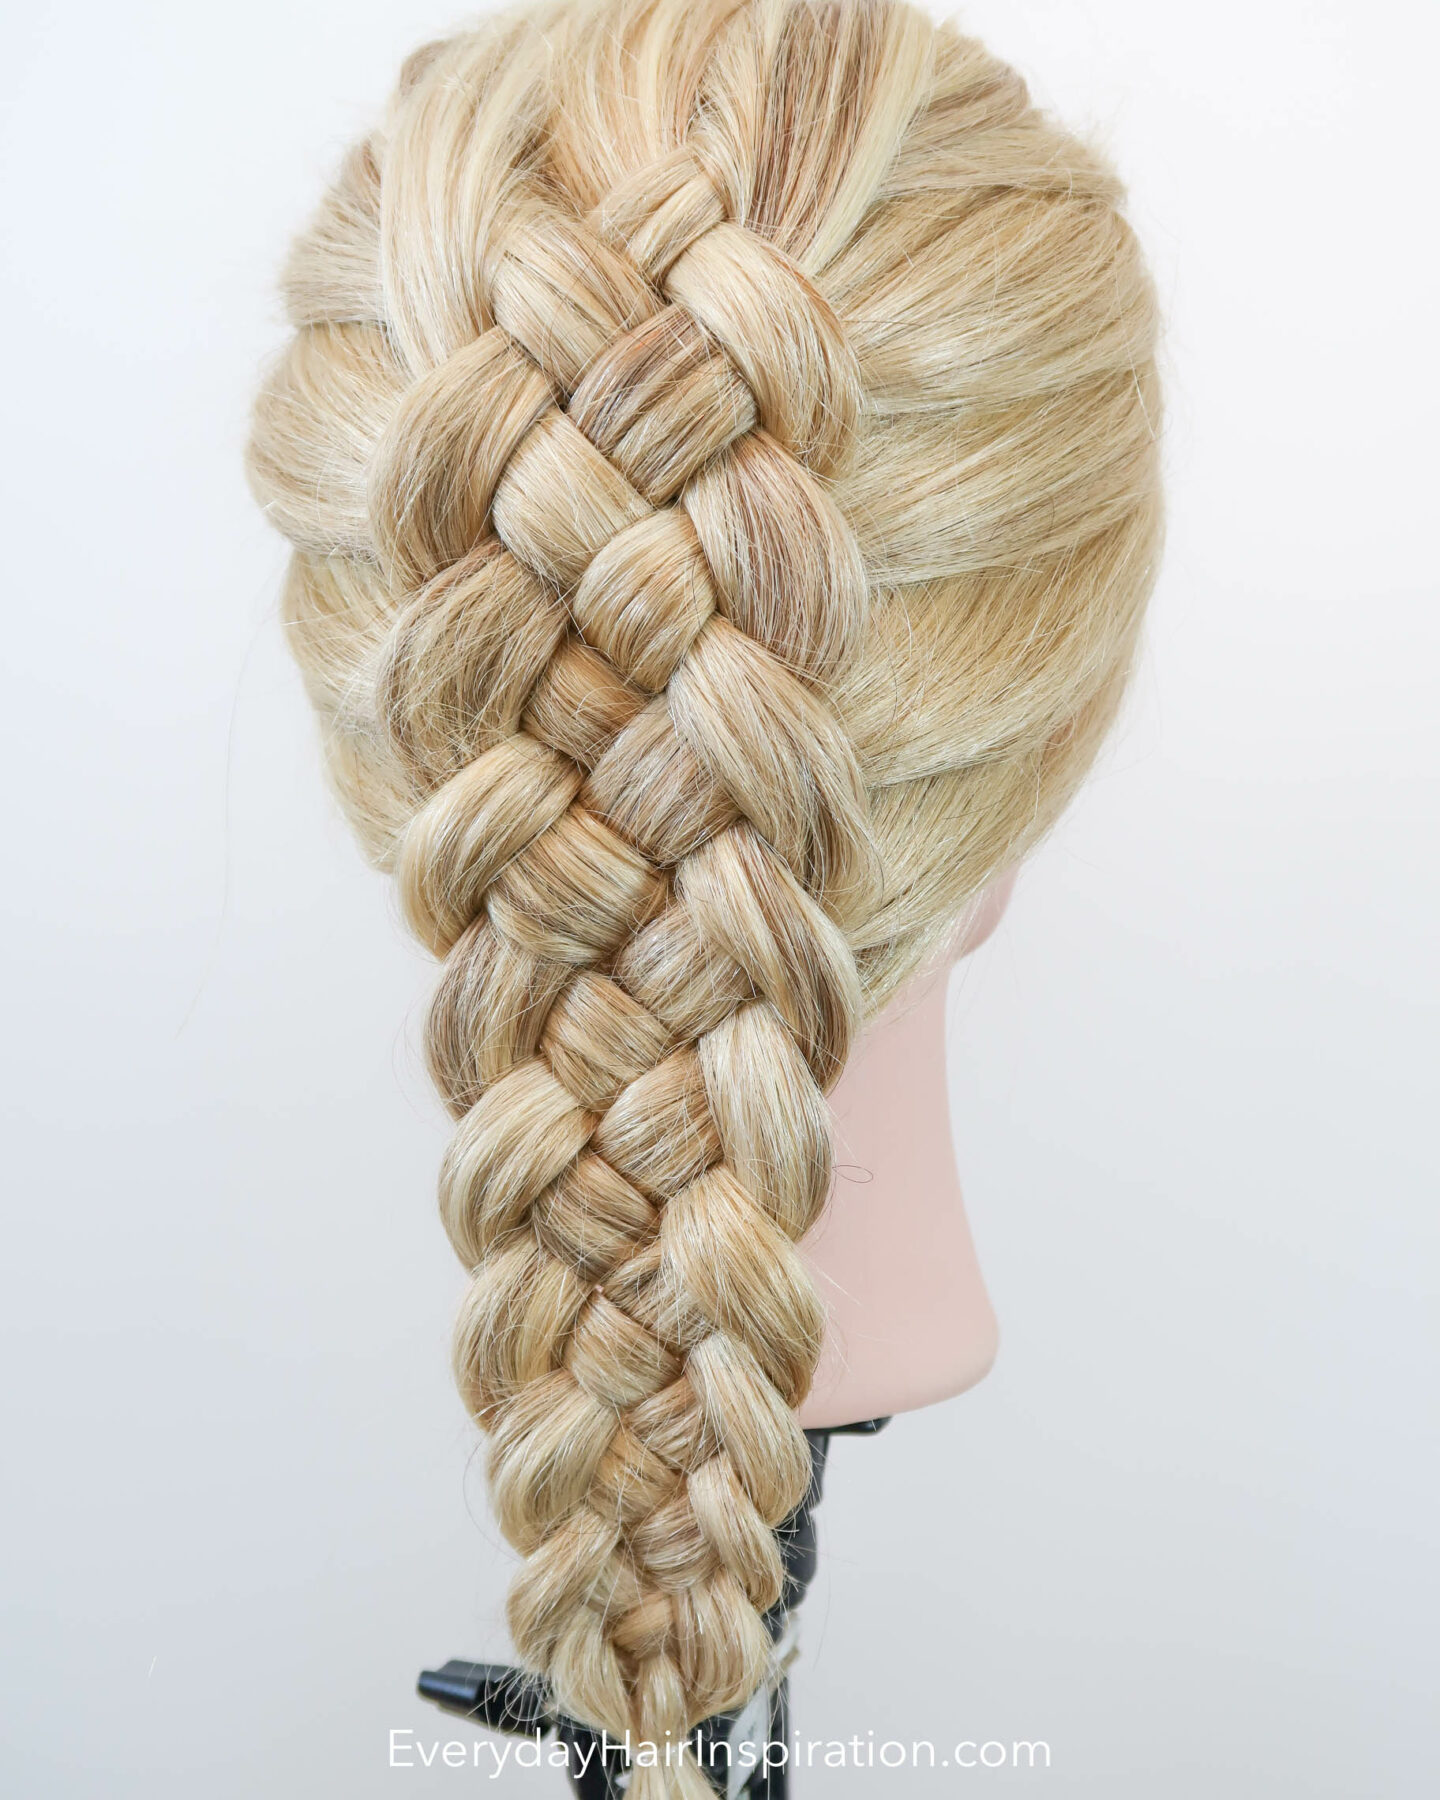 Blonde hairdresser doll with the hair styled into a dutch 5 strand braid, seen from an angle.